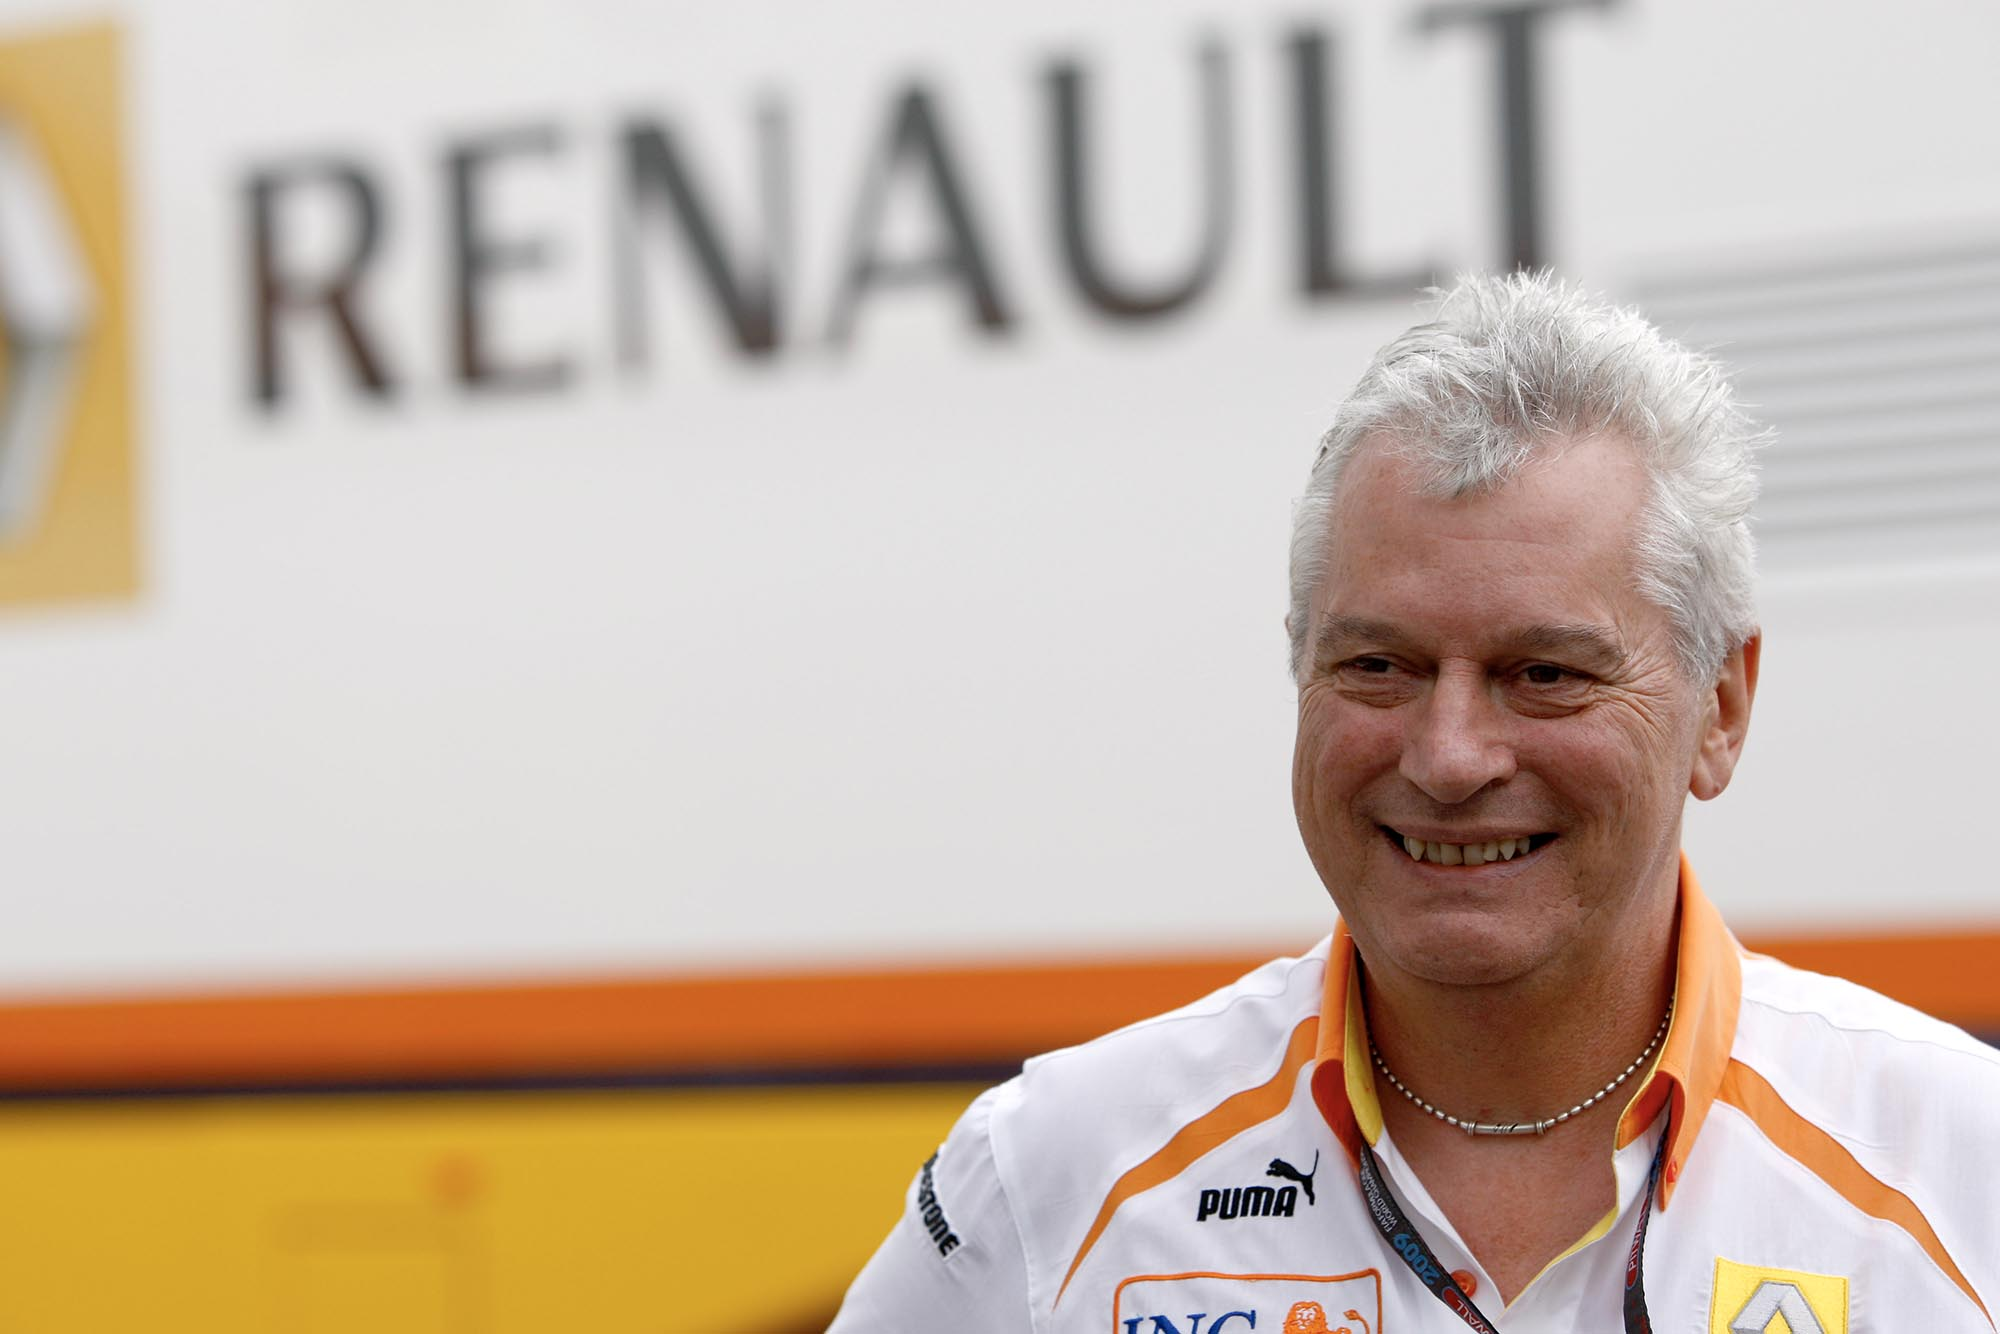 Pat Symonds Renault technical director at the 2009 British Grand Prix